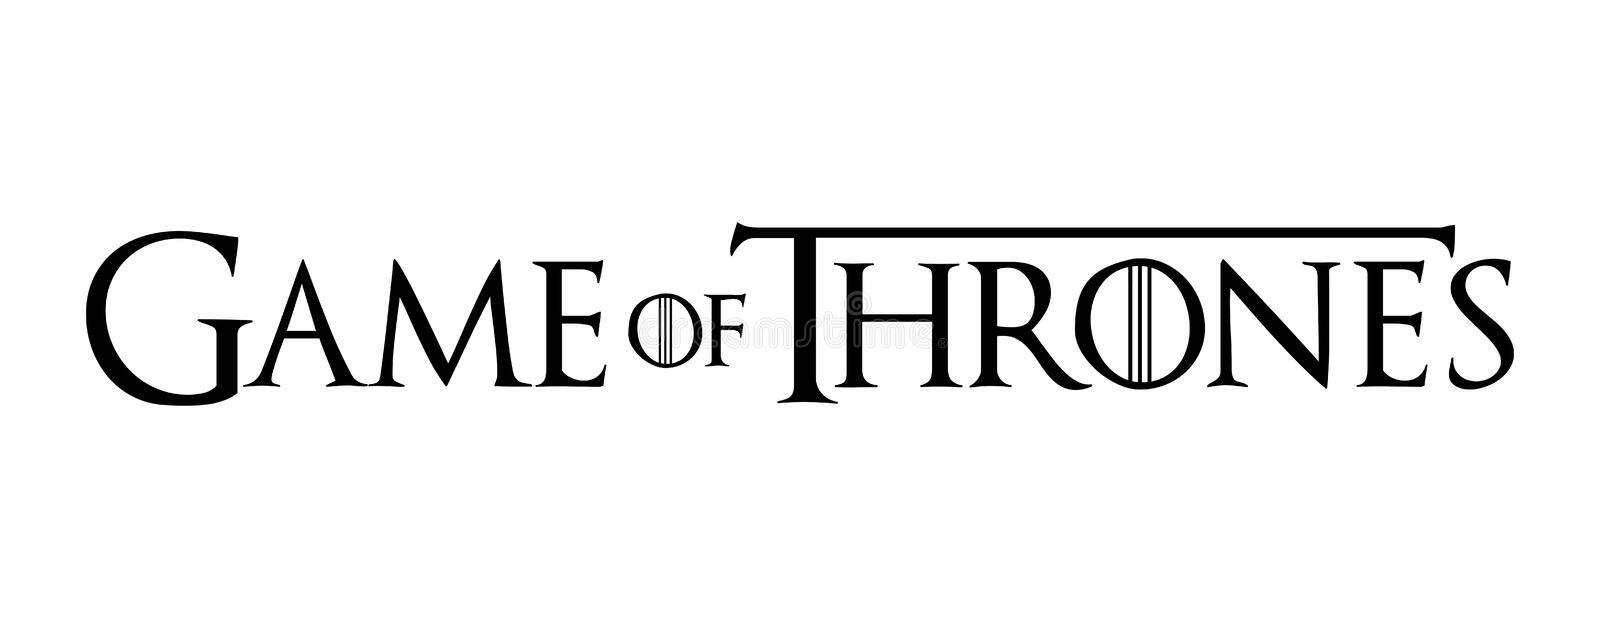 Game Thrones Stock Illustrations 471 Game Thrones Stock Illustrations Vectors Clipart Dreamstime